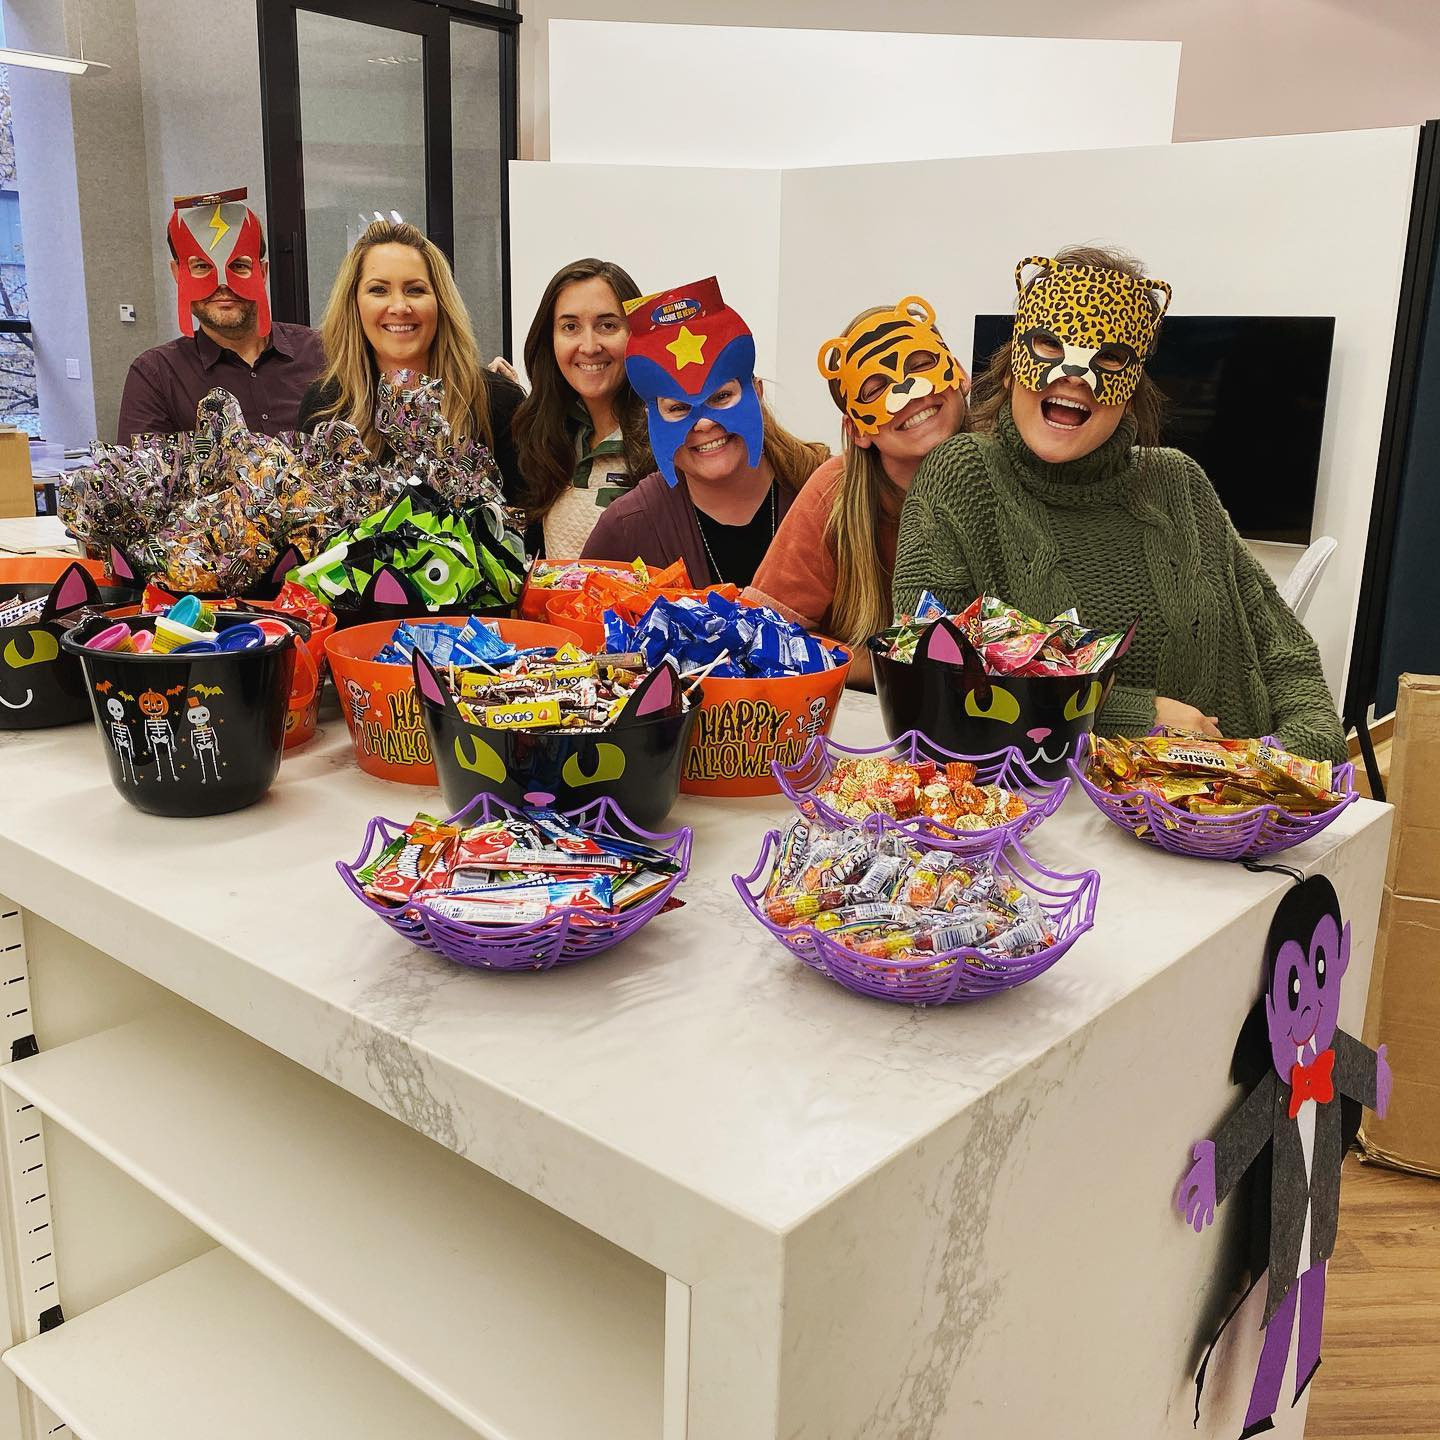 Today we're delivering Halloween trick or treat baskets and decor to @brentsplace for the kids to enjoy!  #acquilanogives #denvercharity